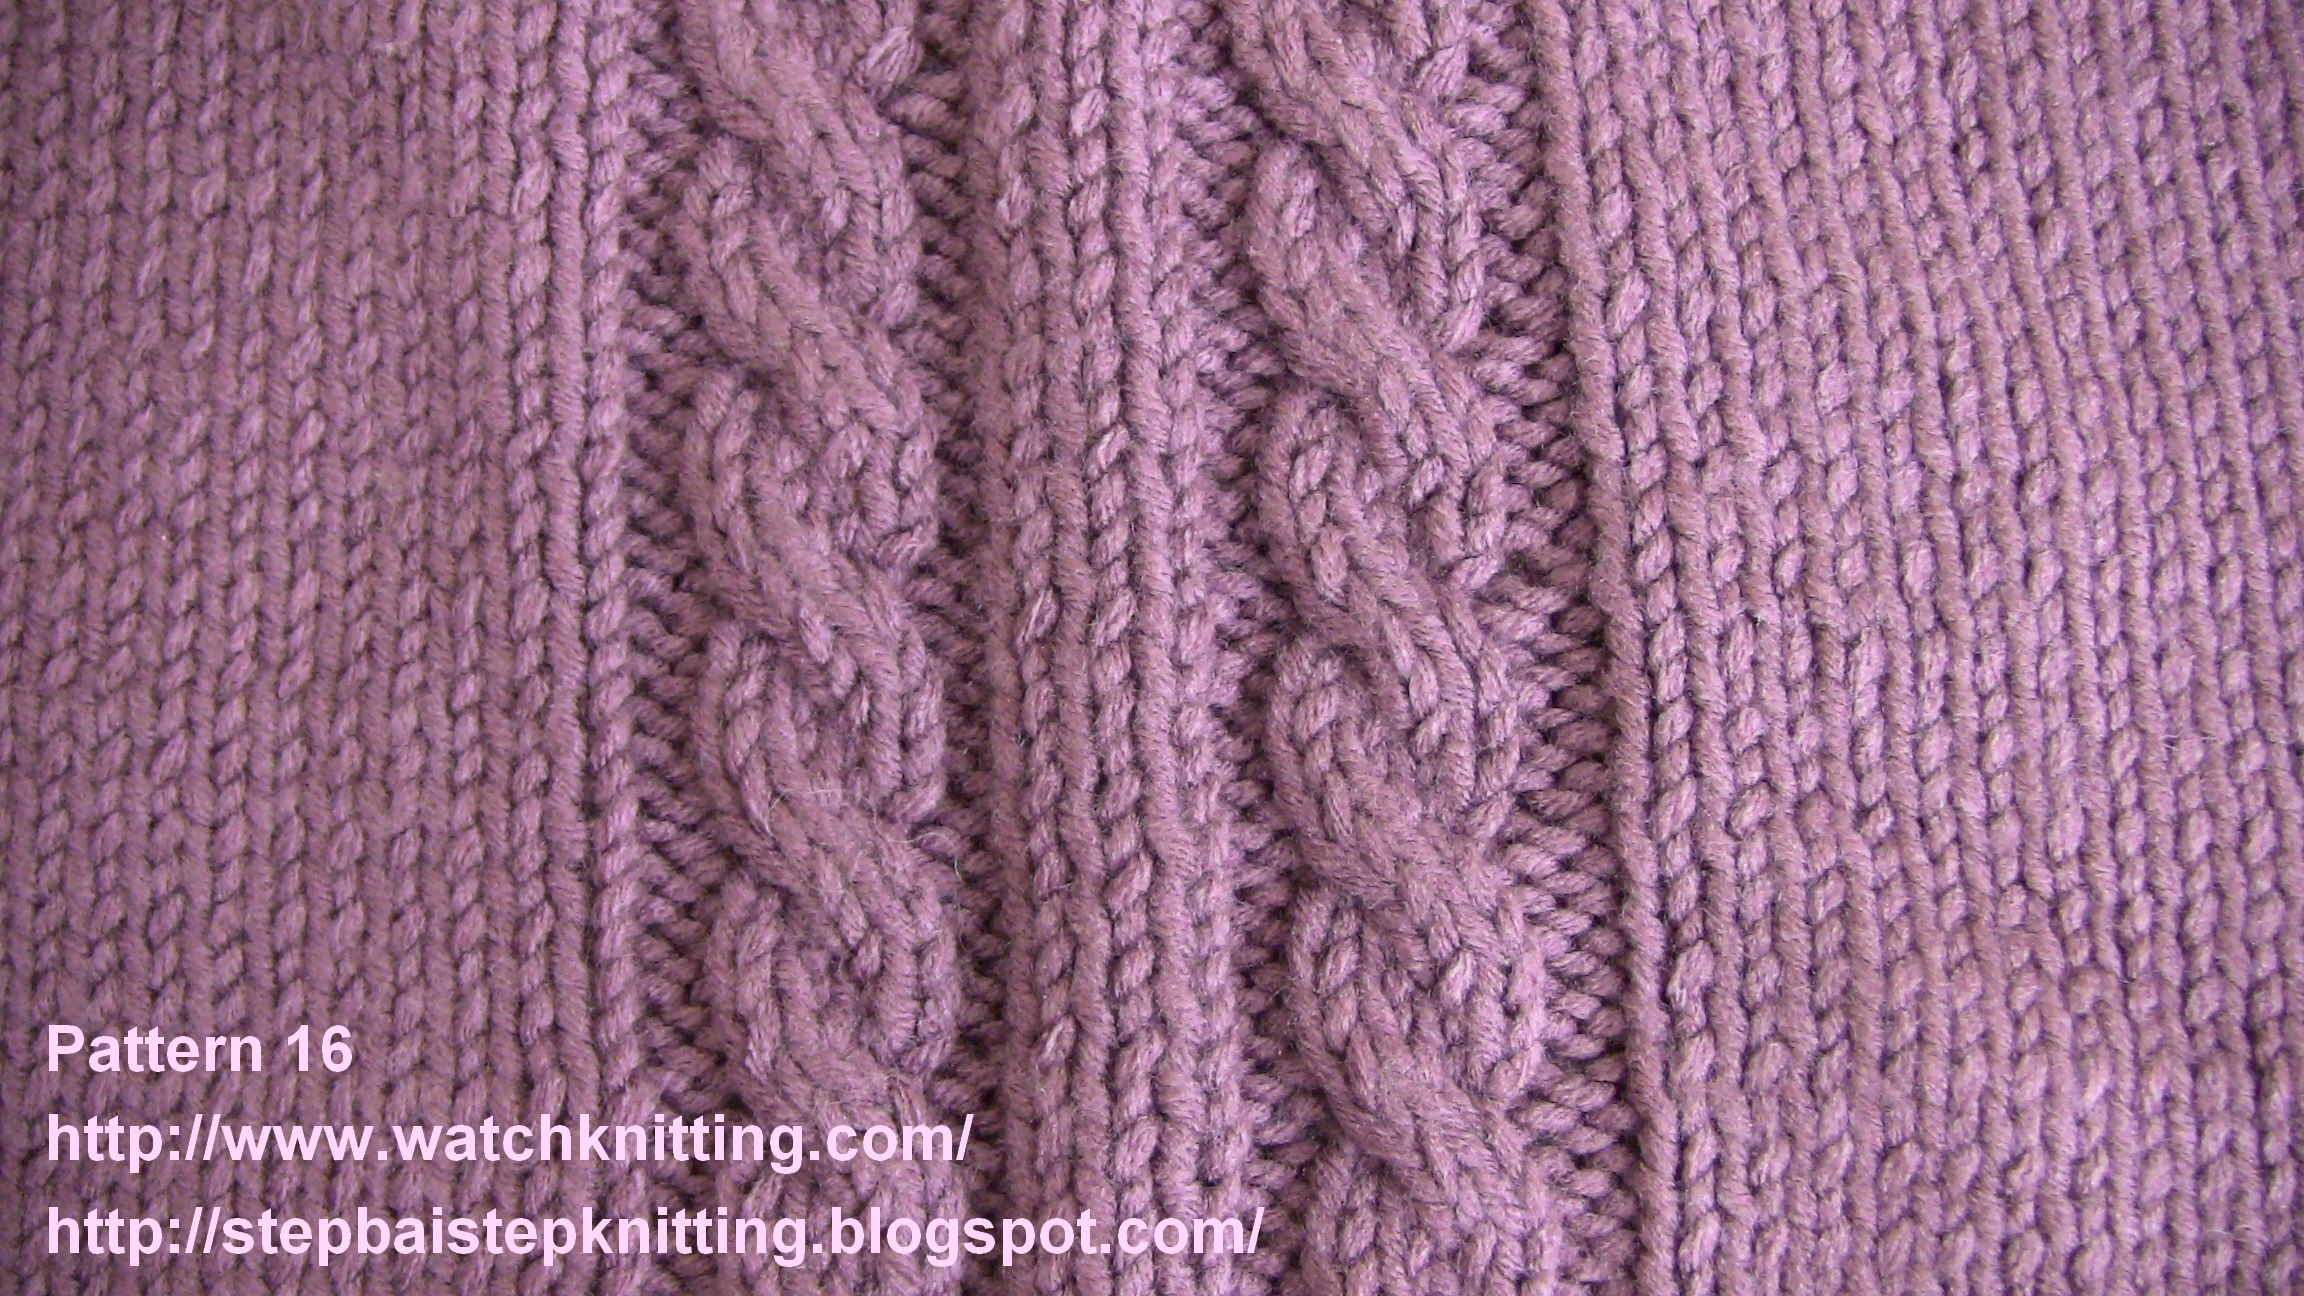 Watch knitting Models- Cable stitch